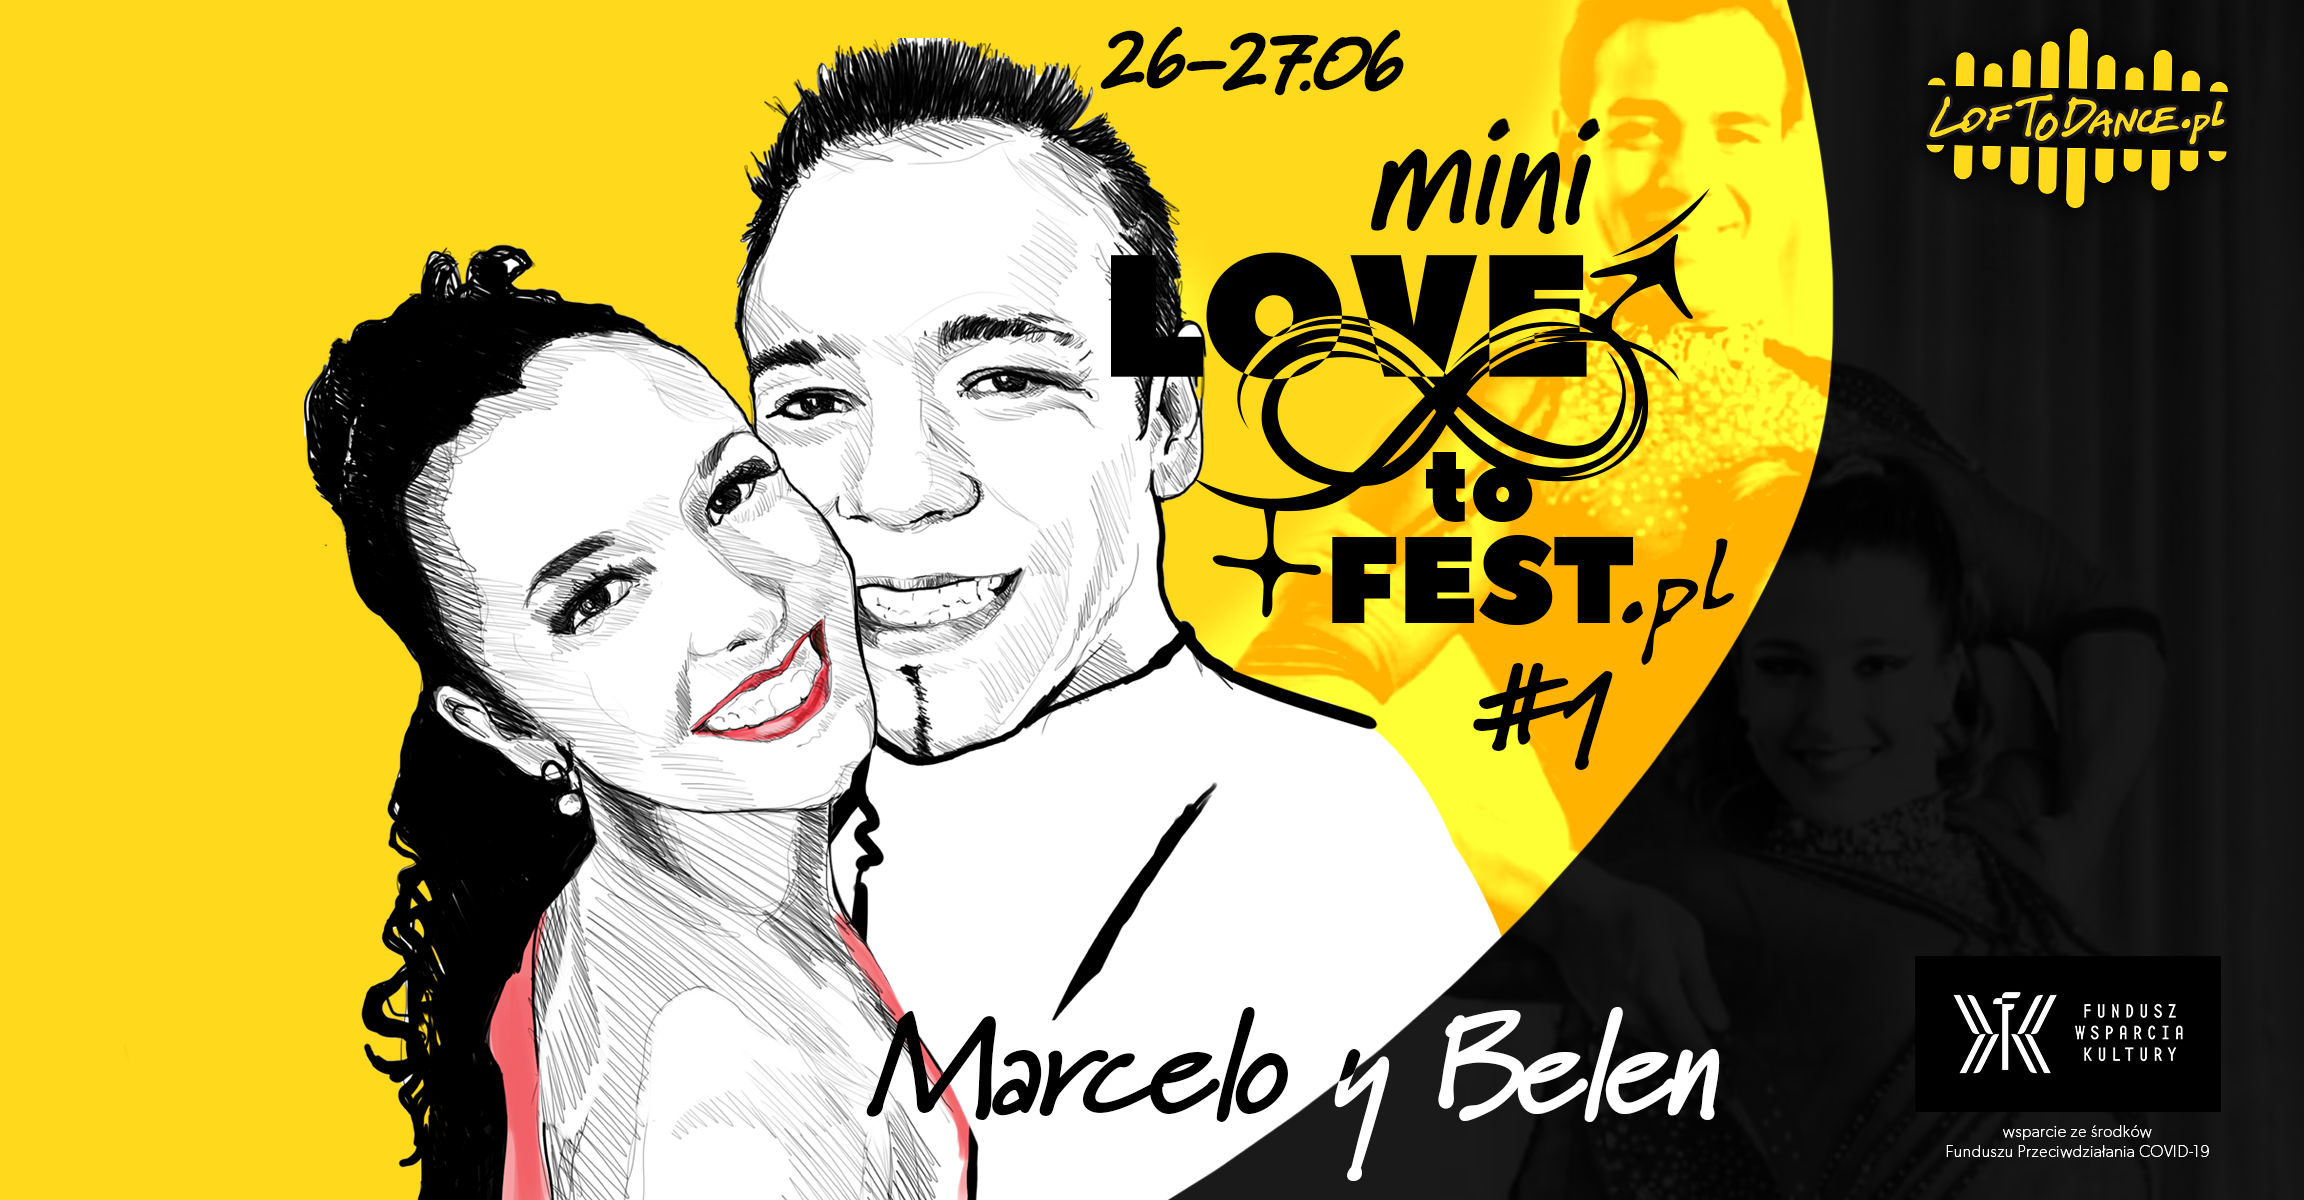 Mini LOVEtoFEST #1 with Marcelo y Belen - sklep Loftodance